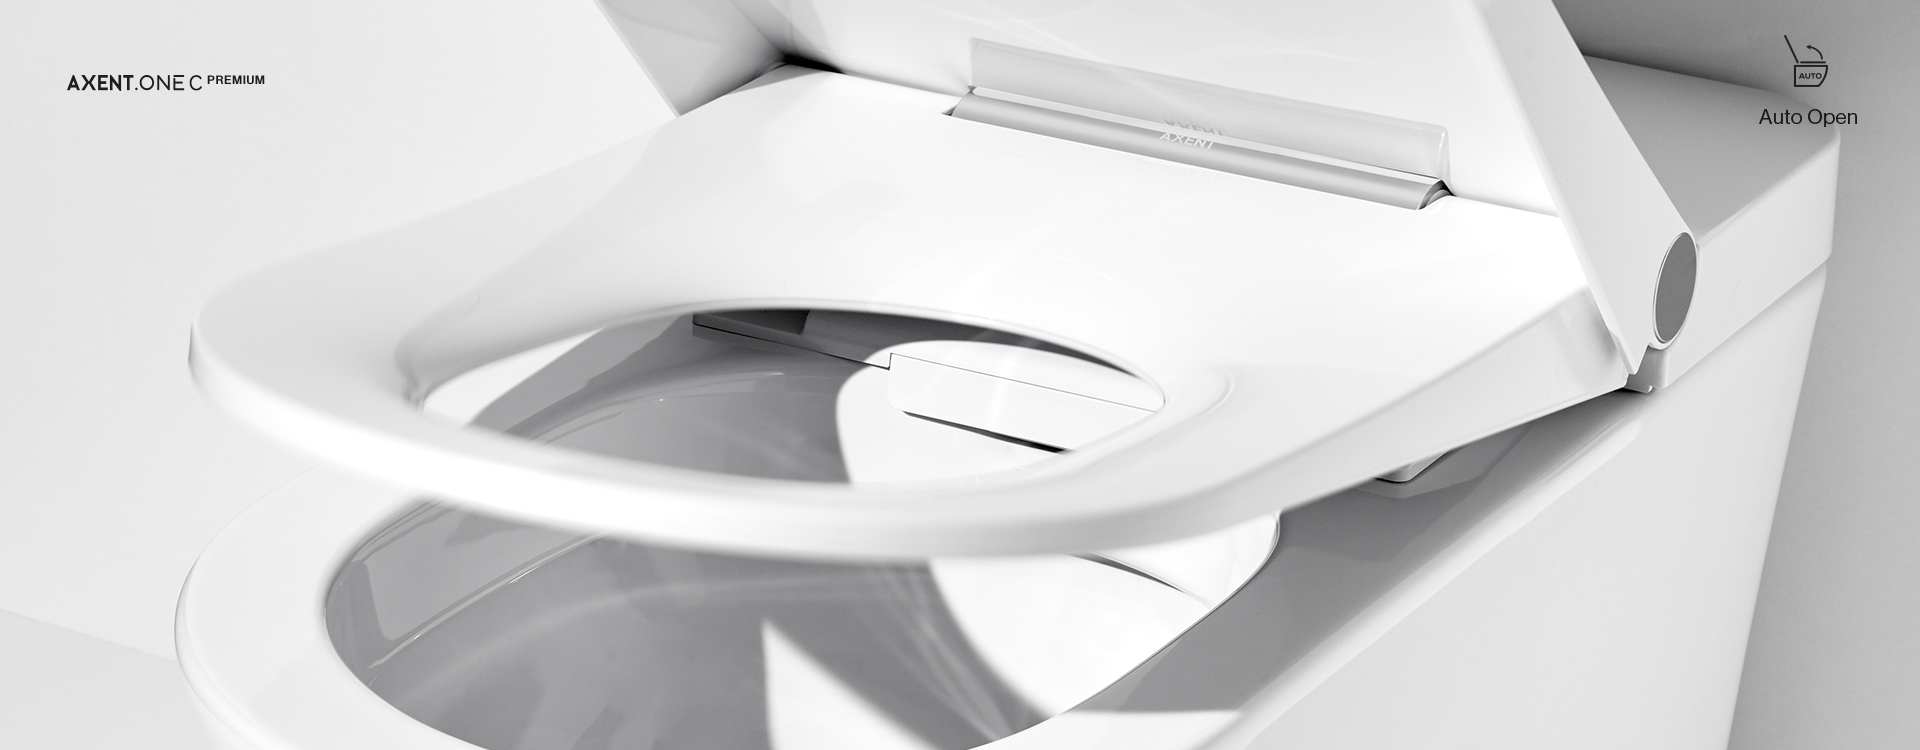 AXENT.ONE C Shower toilet   Features